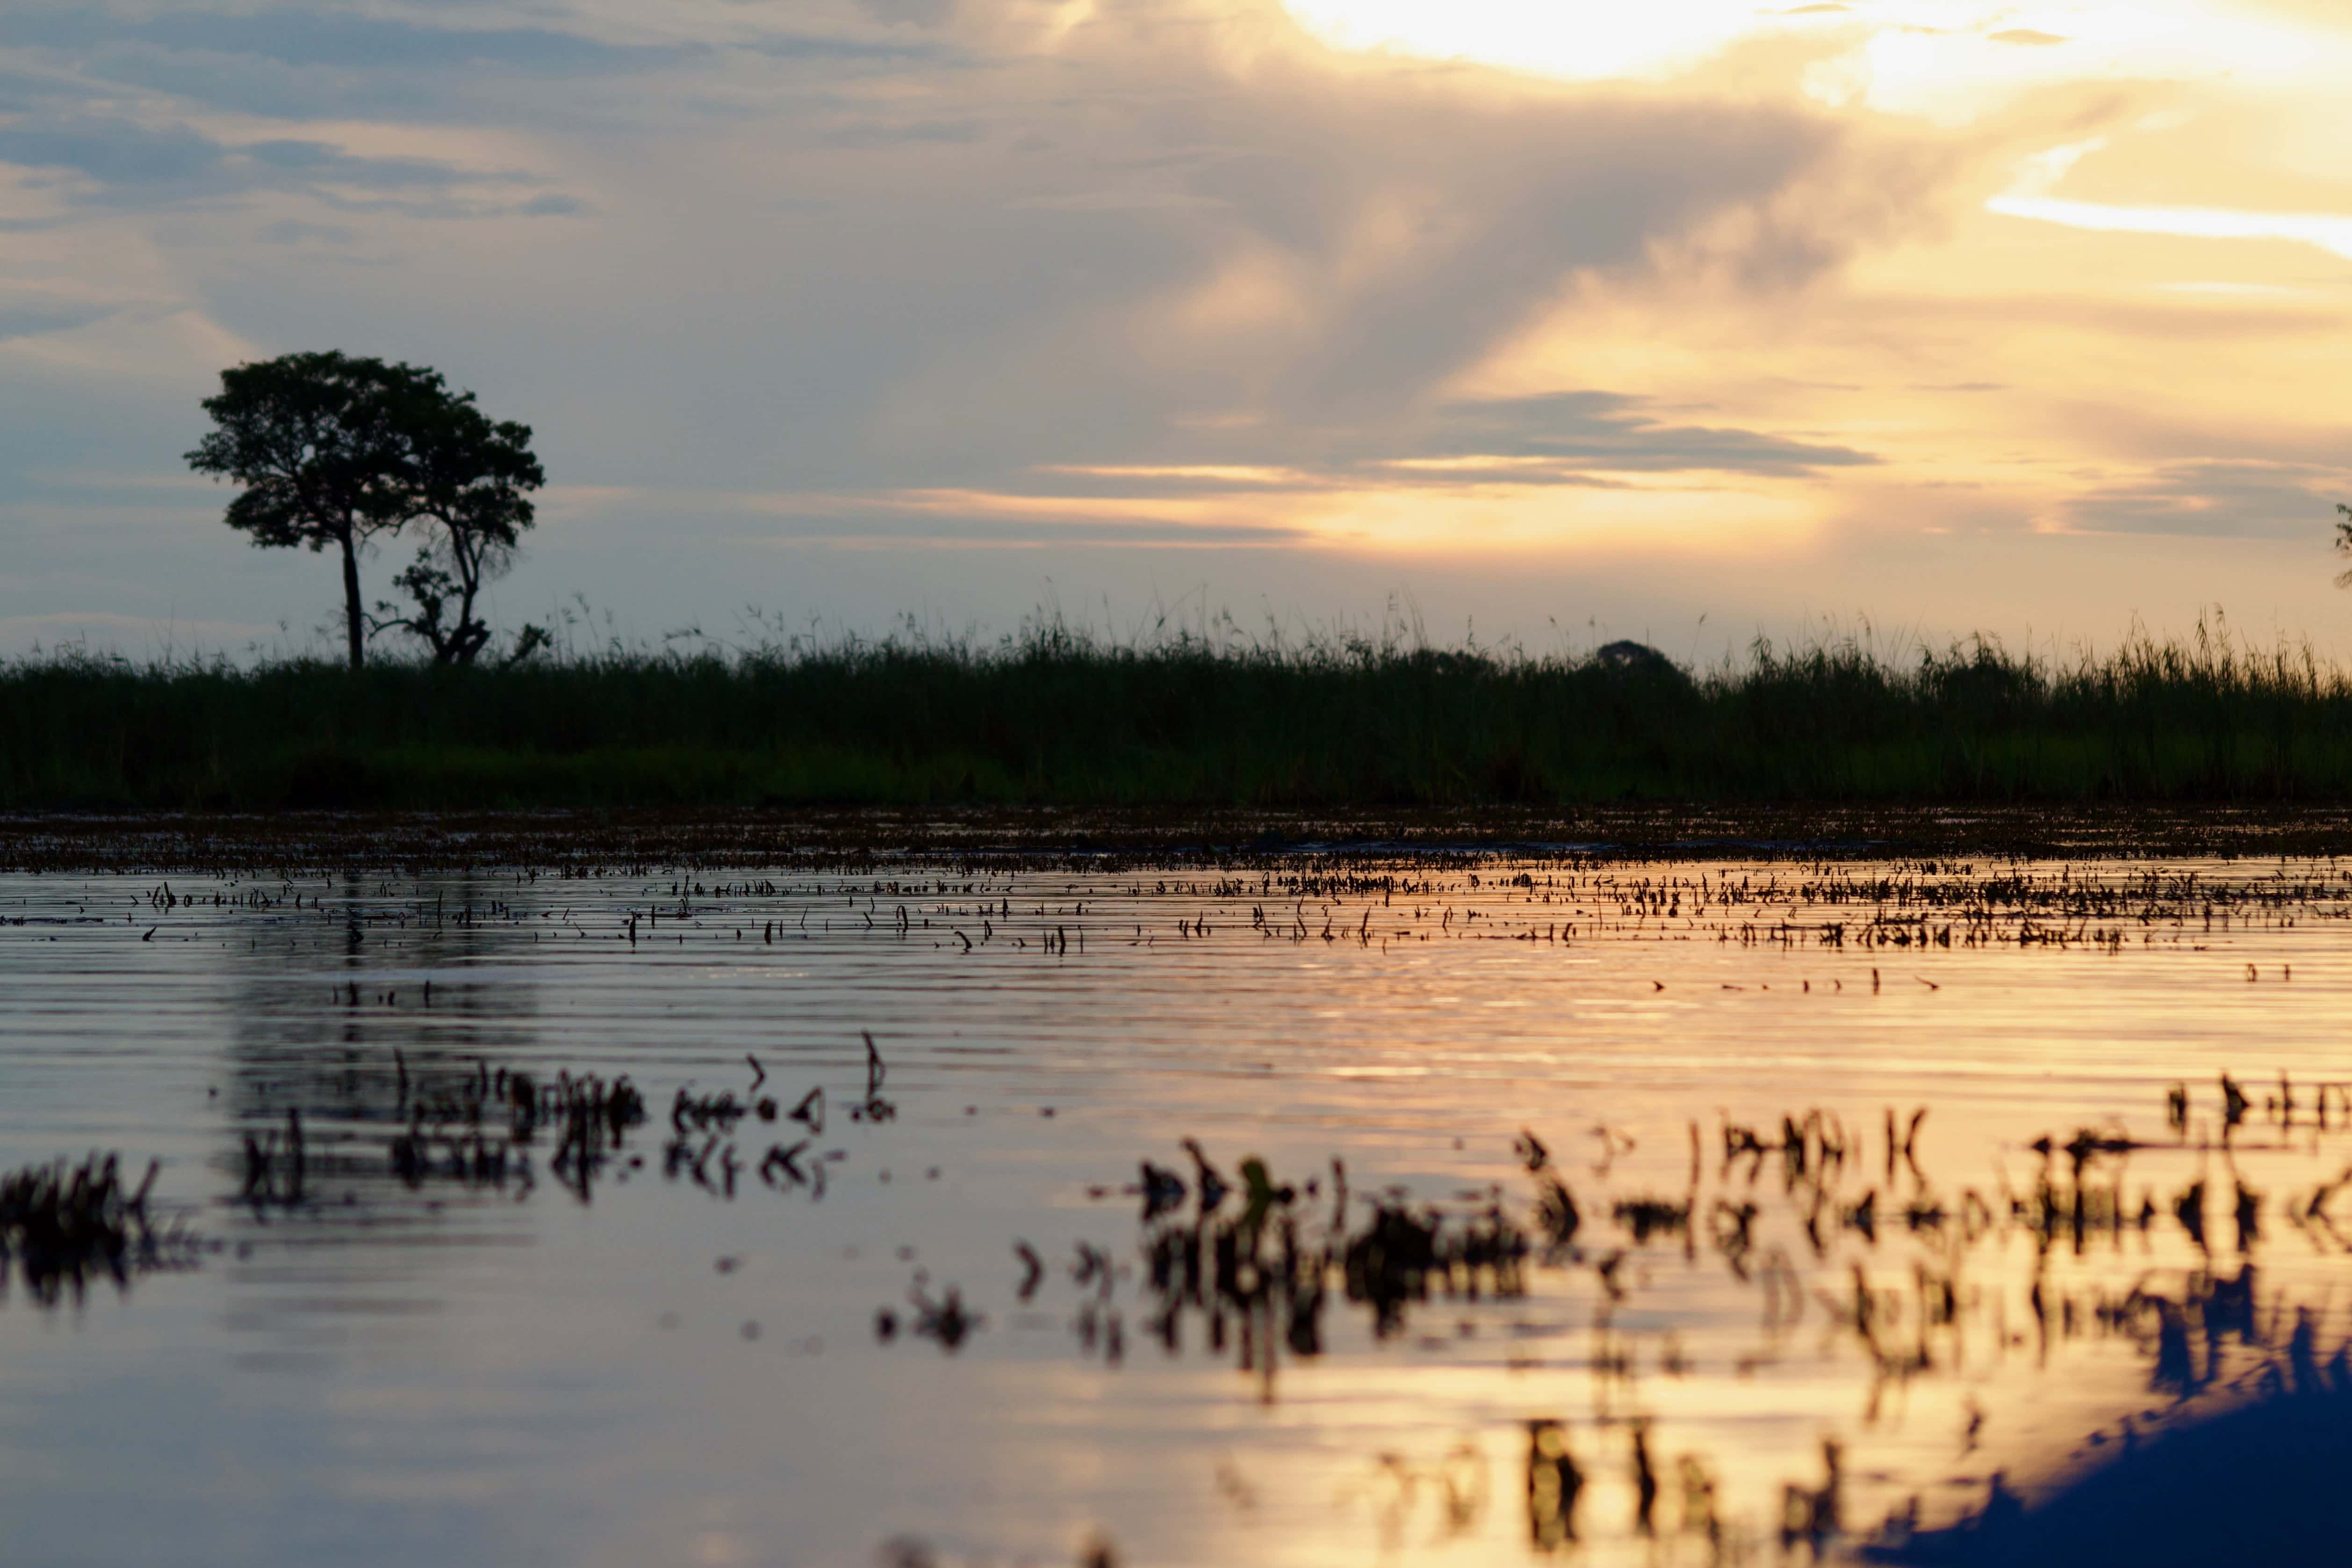 If you dream of roaming the plains of Africa and frolicking amongst nature then you need to organize yourself a safari trip right away. If you still need some convincing before you go ahead and book your seat on an African safari tour, and then read more about our 5 reasons why you should go explore the wilderness. Read more at thefivefoottraveler.com